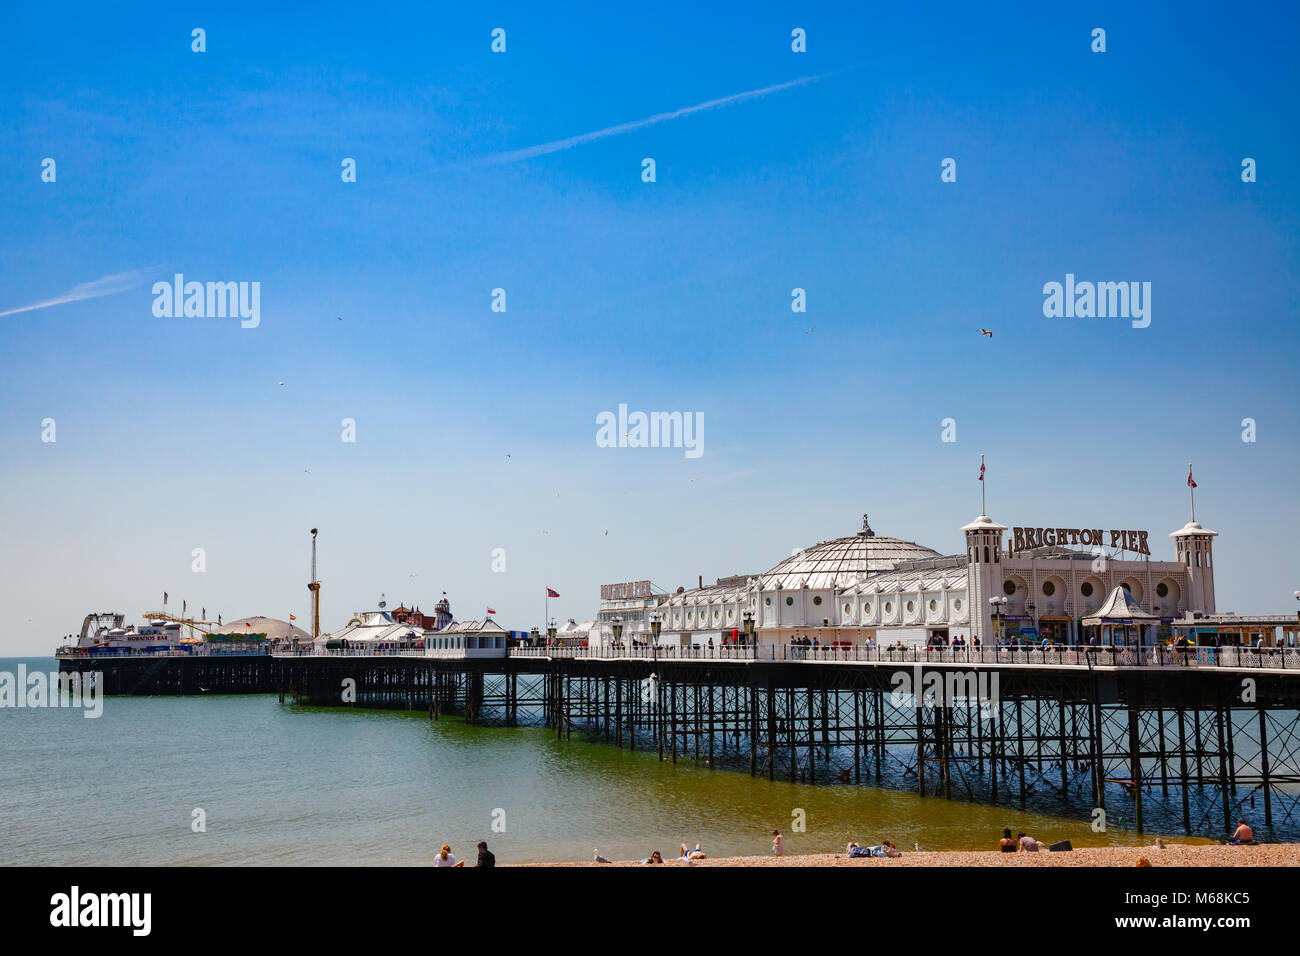 BRIGHTON, UK - JUN 5, 2013: View of the Brighton Palace Pier, commonly known as the Brighton Pier or the Palace - Stock Image